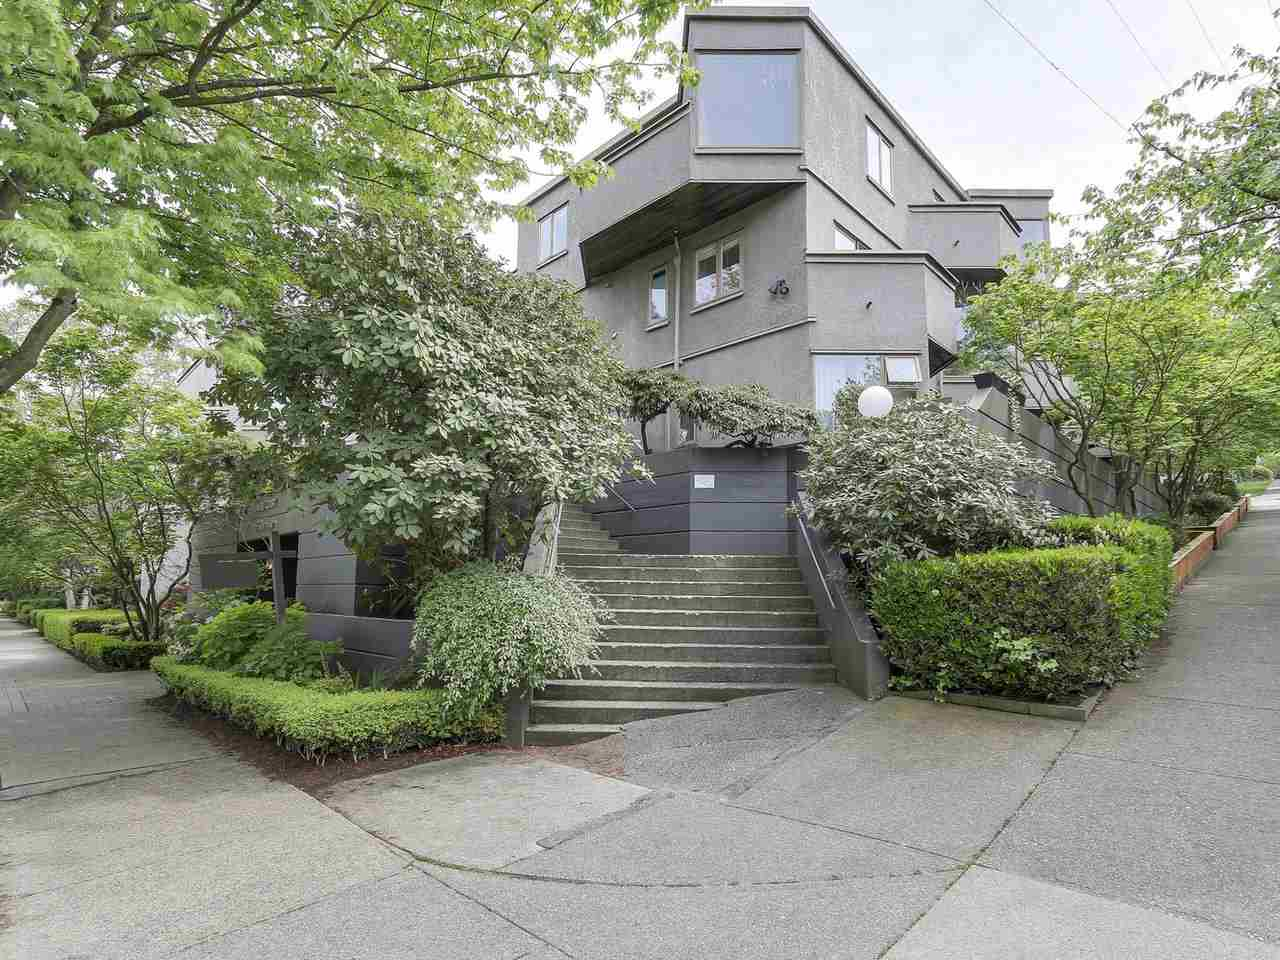 Main Photo: 58 870 W 7TH AVENUE in Vancouver: Fairview VW Townhouse for sale (Vancouver West)  : MLS® # R2169394